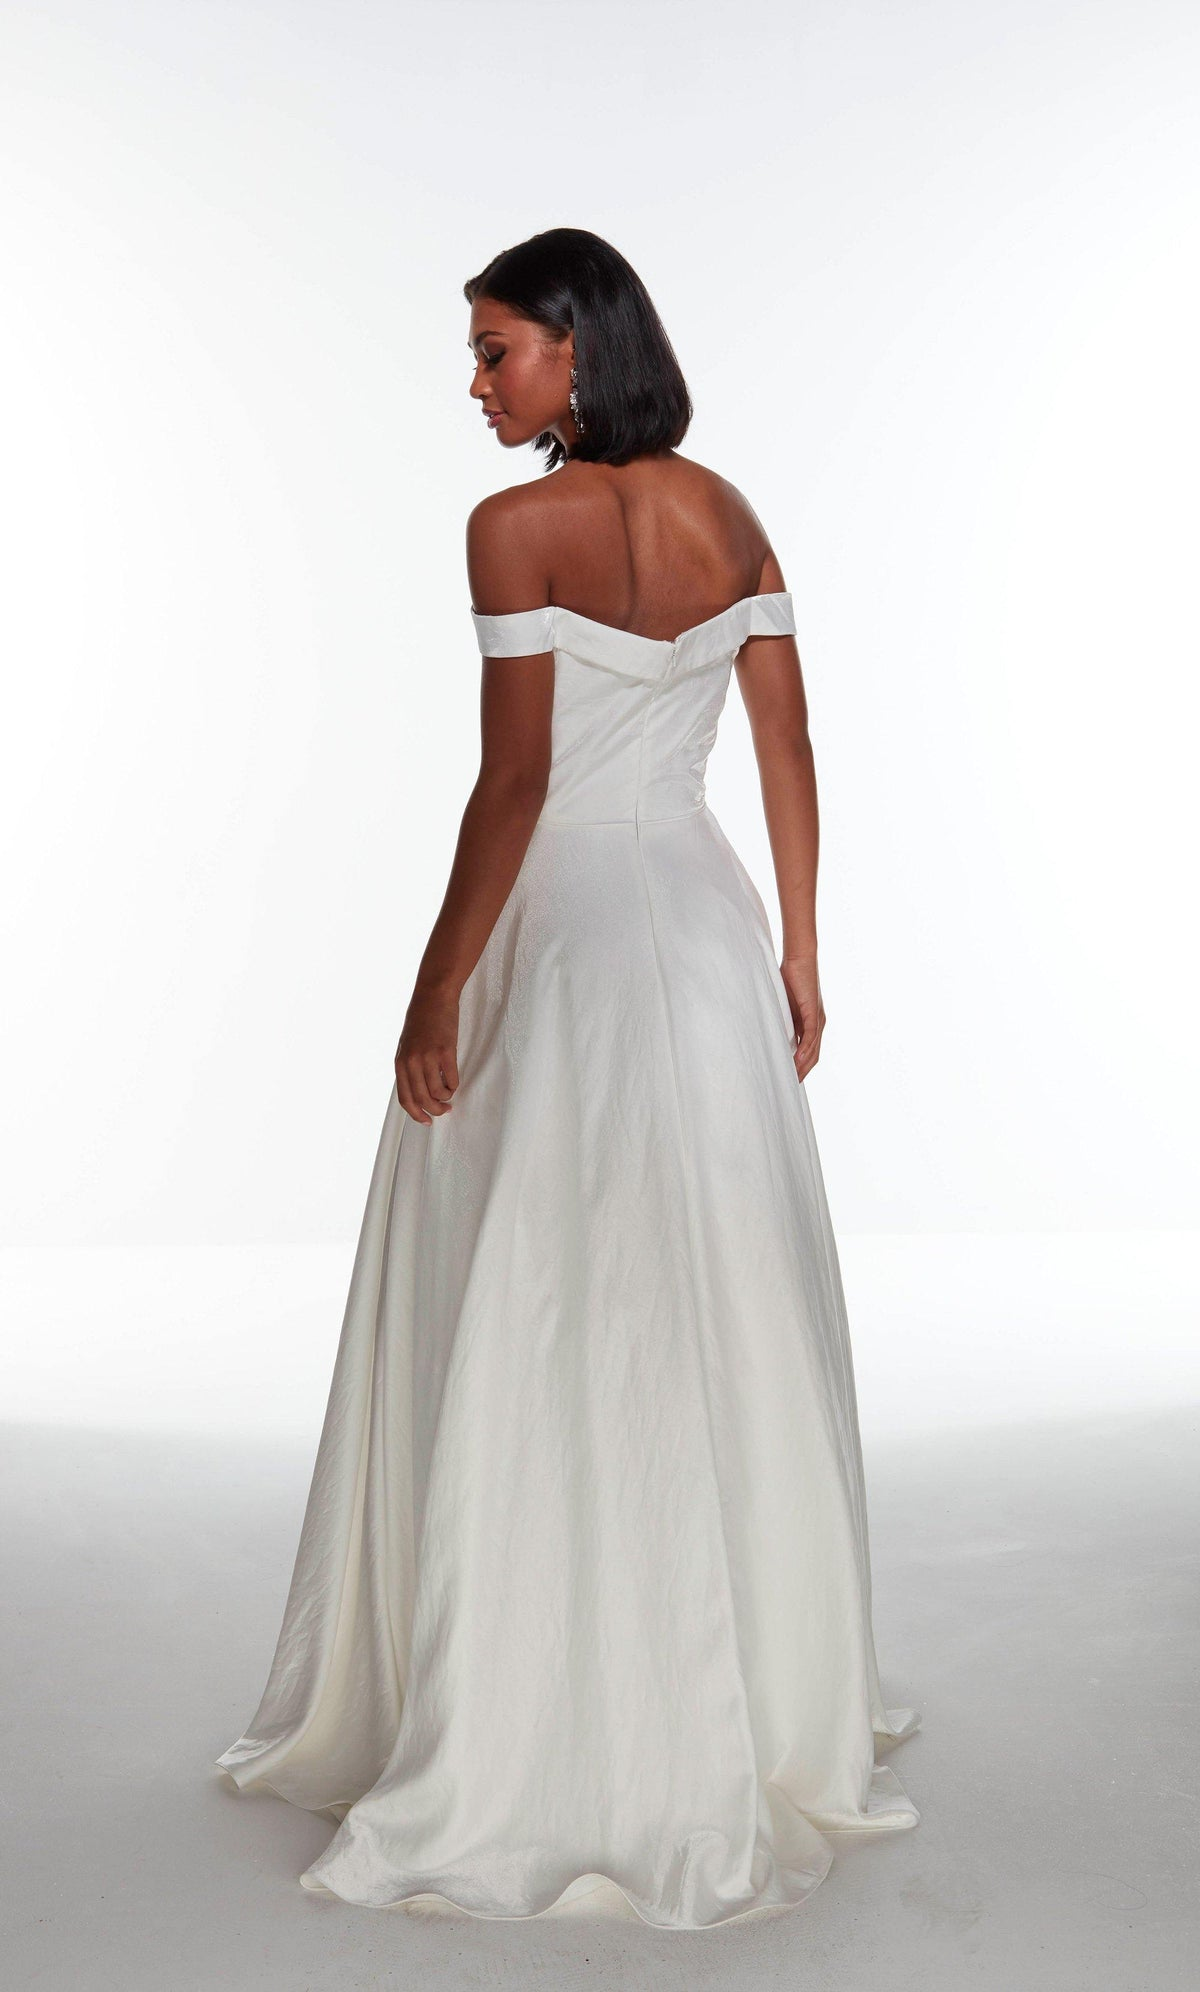 Diamond White off the shoulder shimmer satin wedding dress with an enclosed back and train